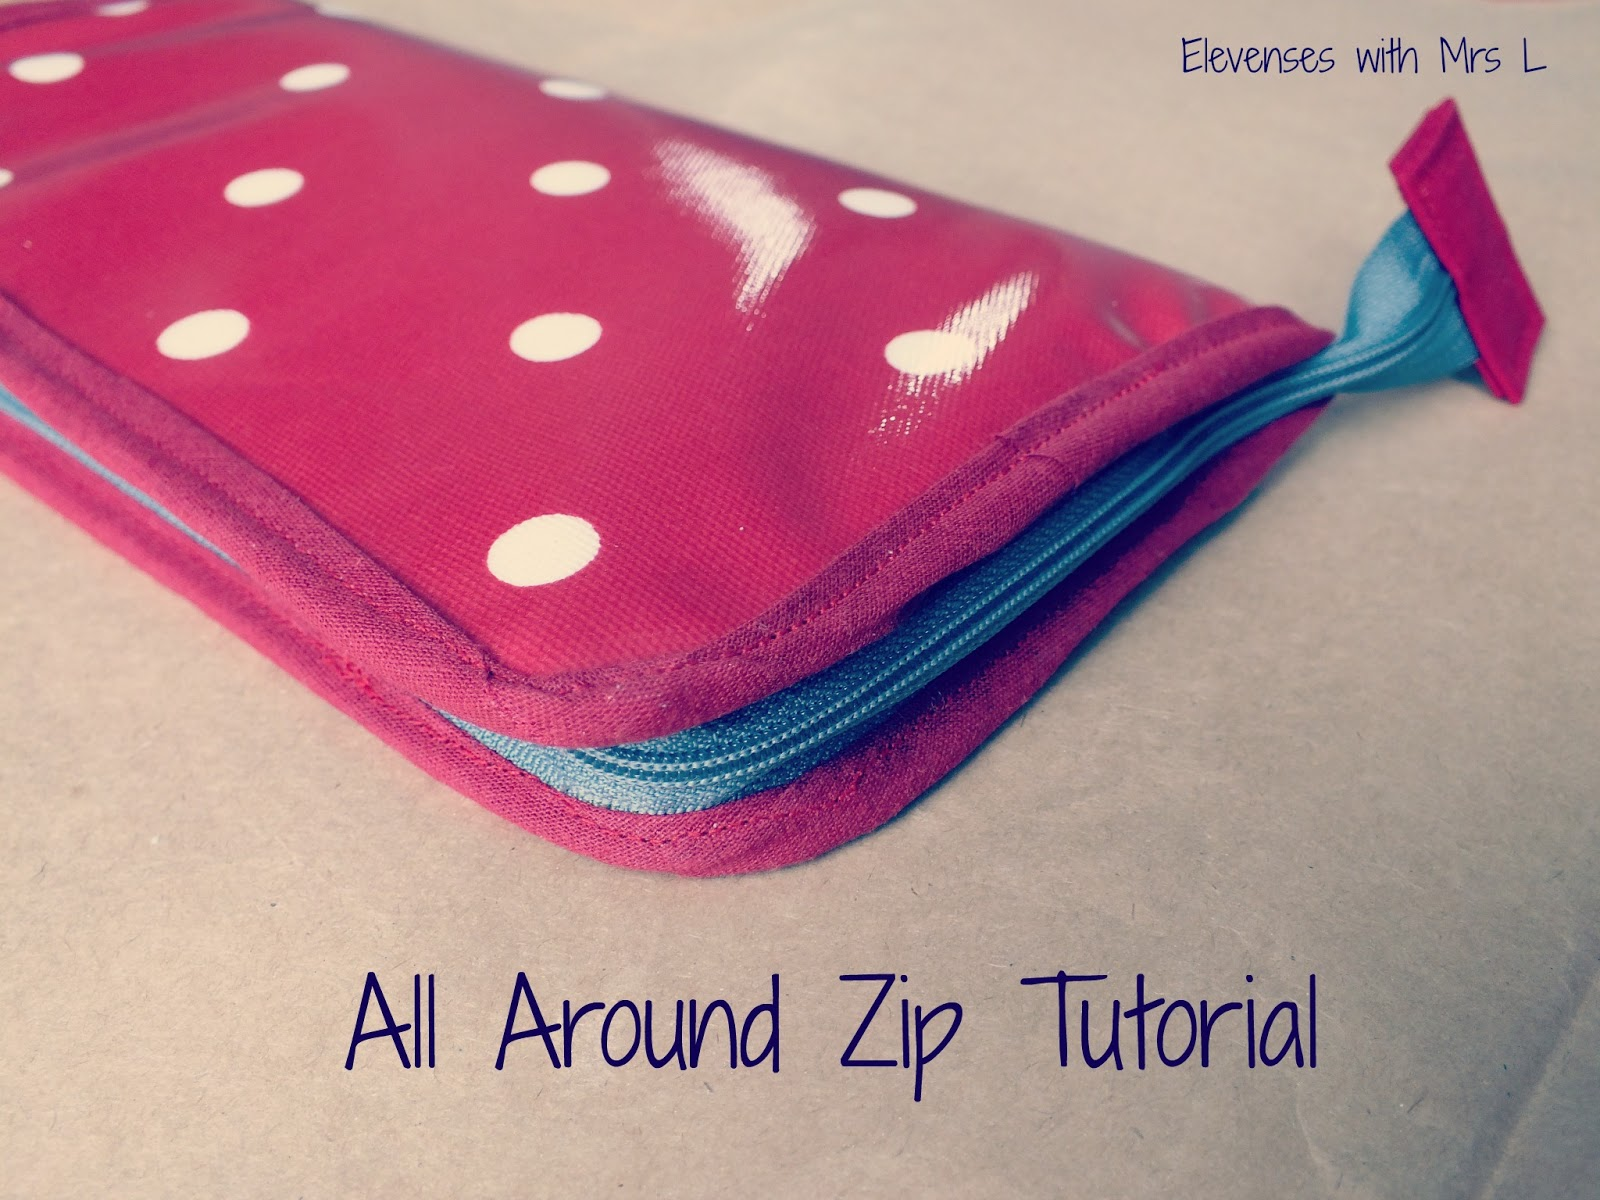 Elevenses with mrs l all around zip tutorial thursday 21 march 2013 jeuxipadfo Choice Image